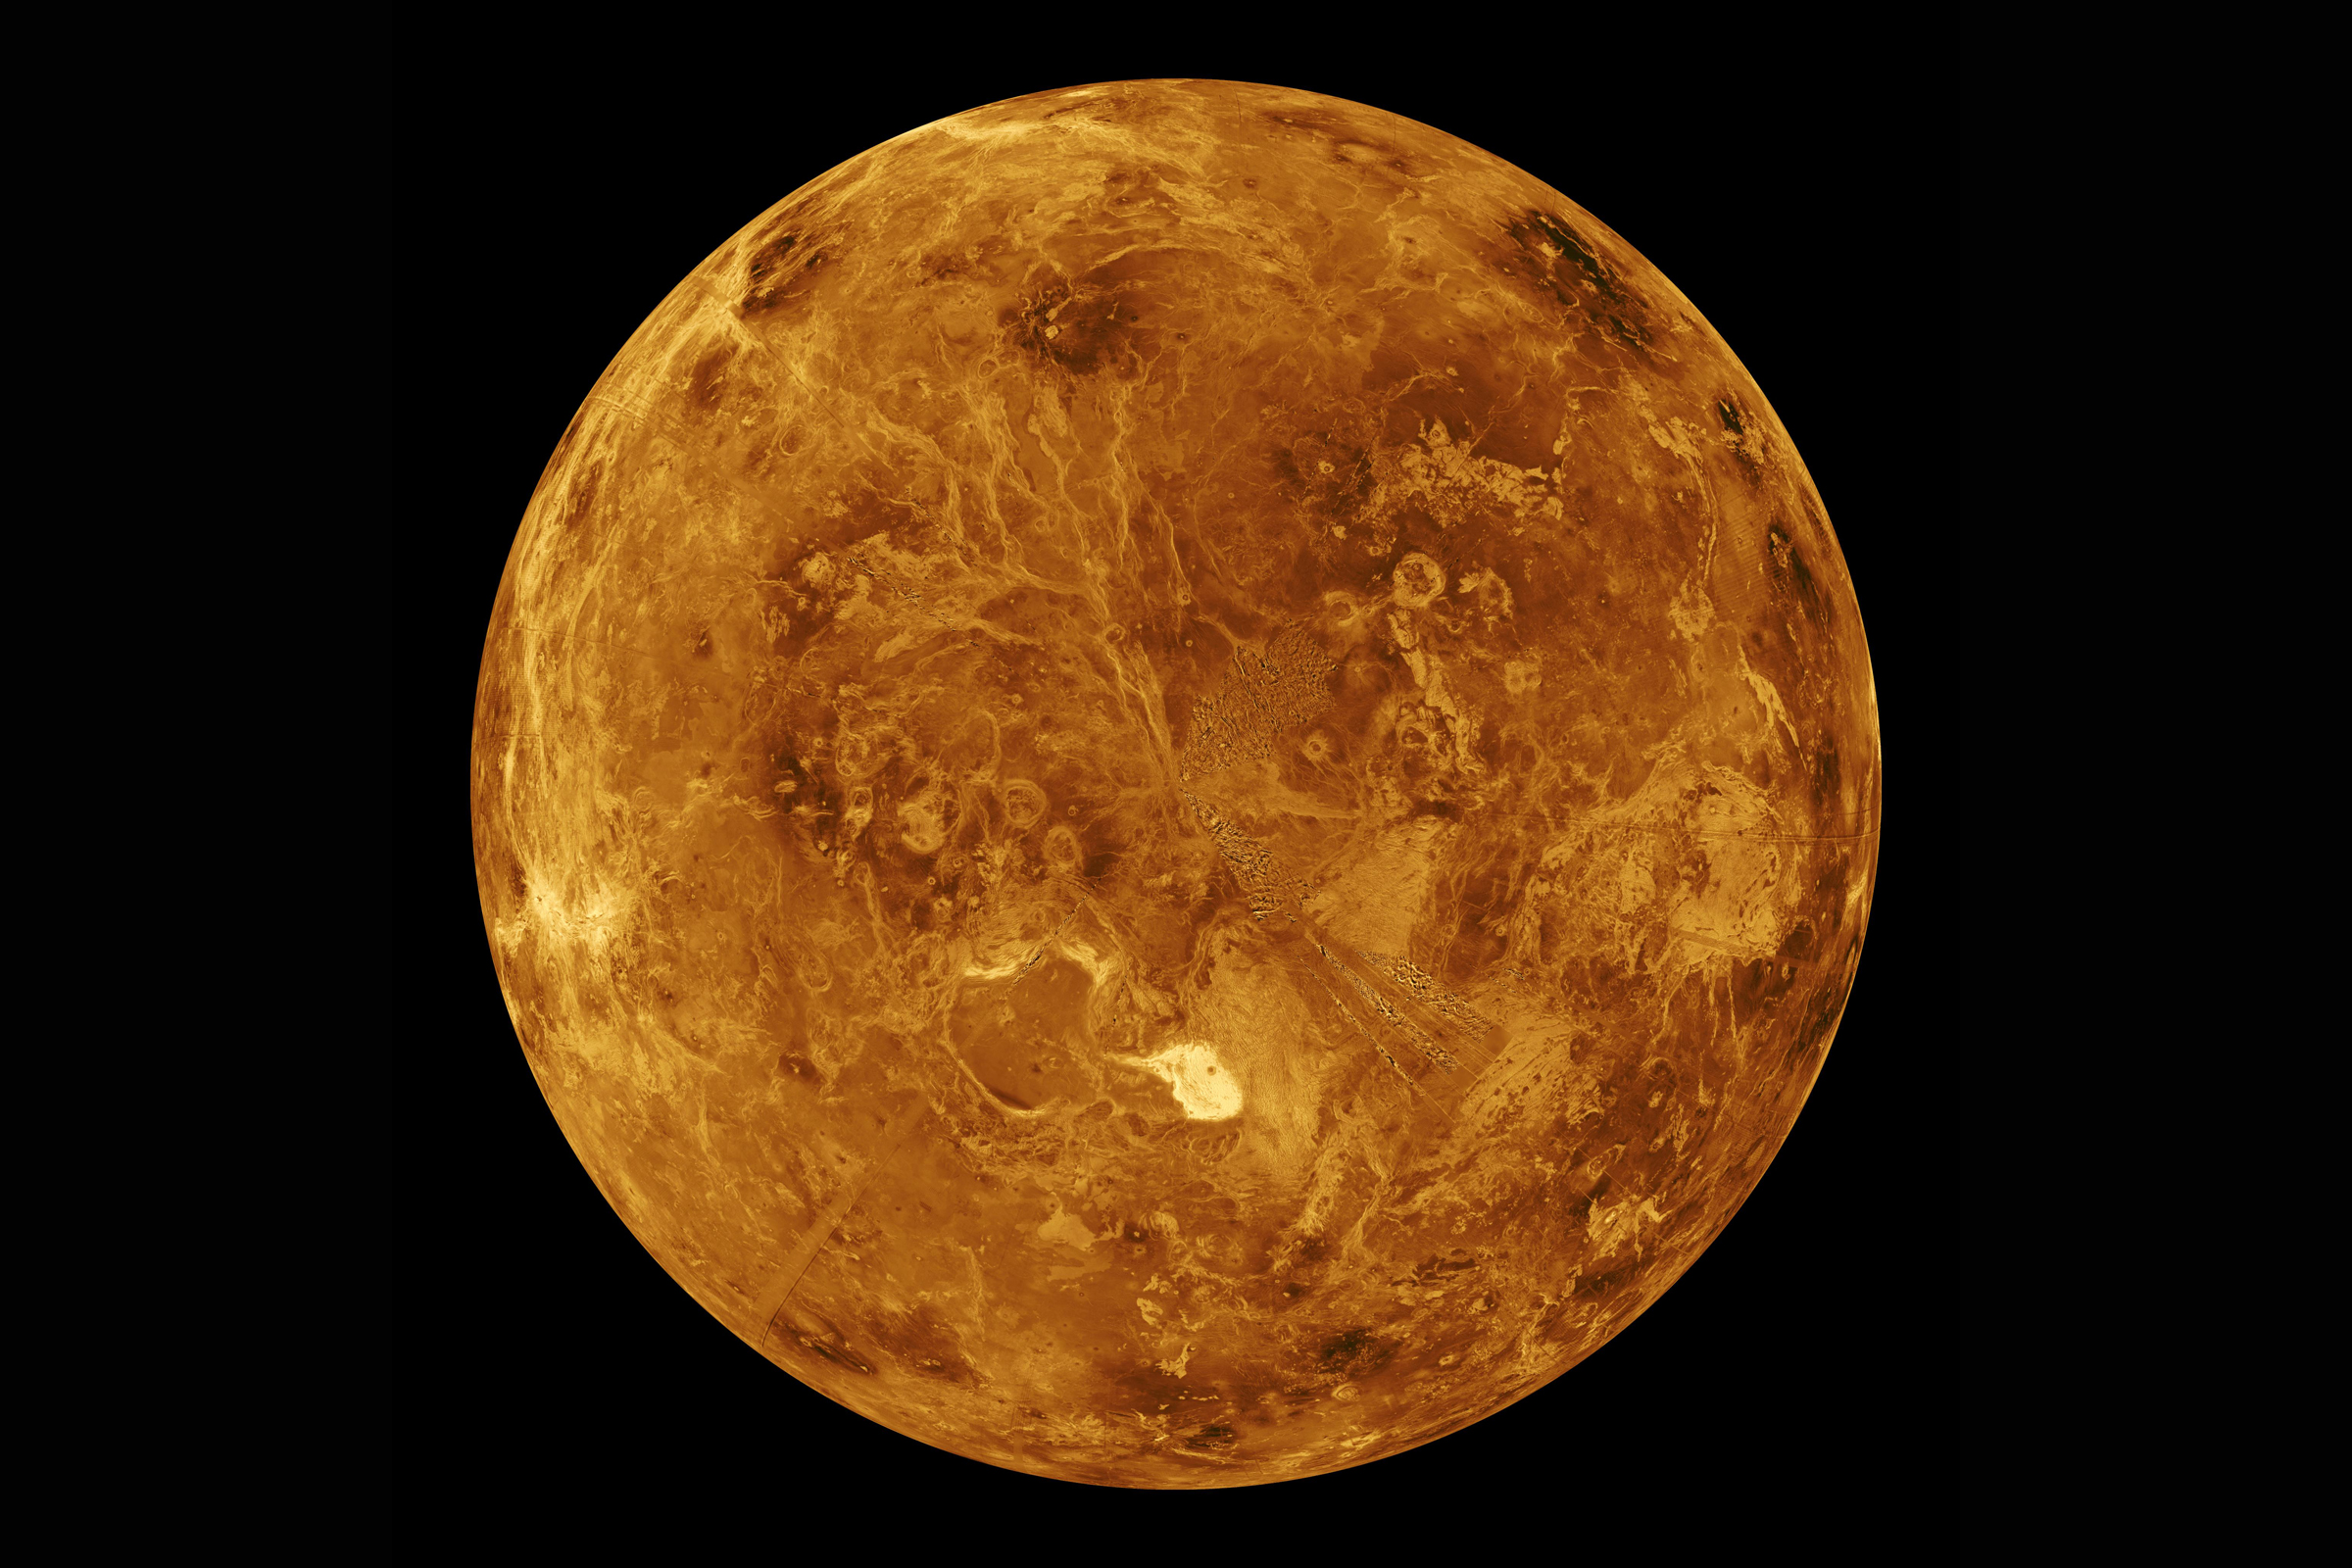 Venus Gets Weirder: CO2 Oceans May Have Covered Surface